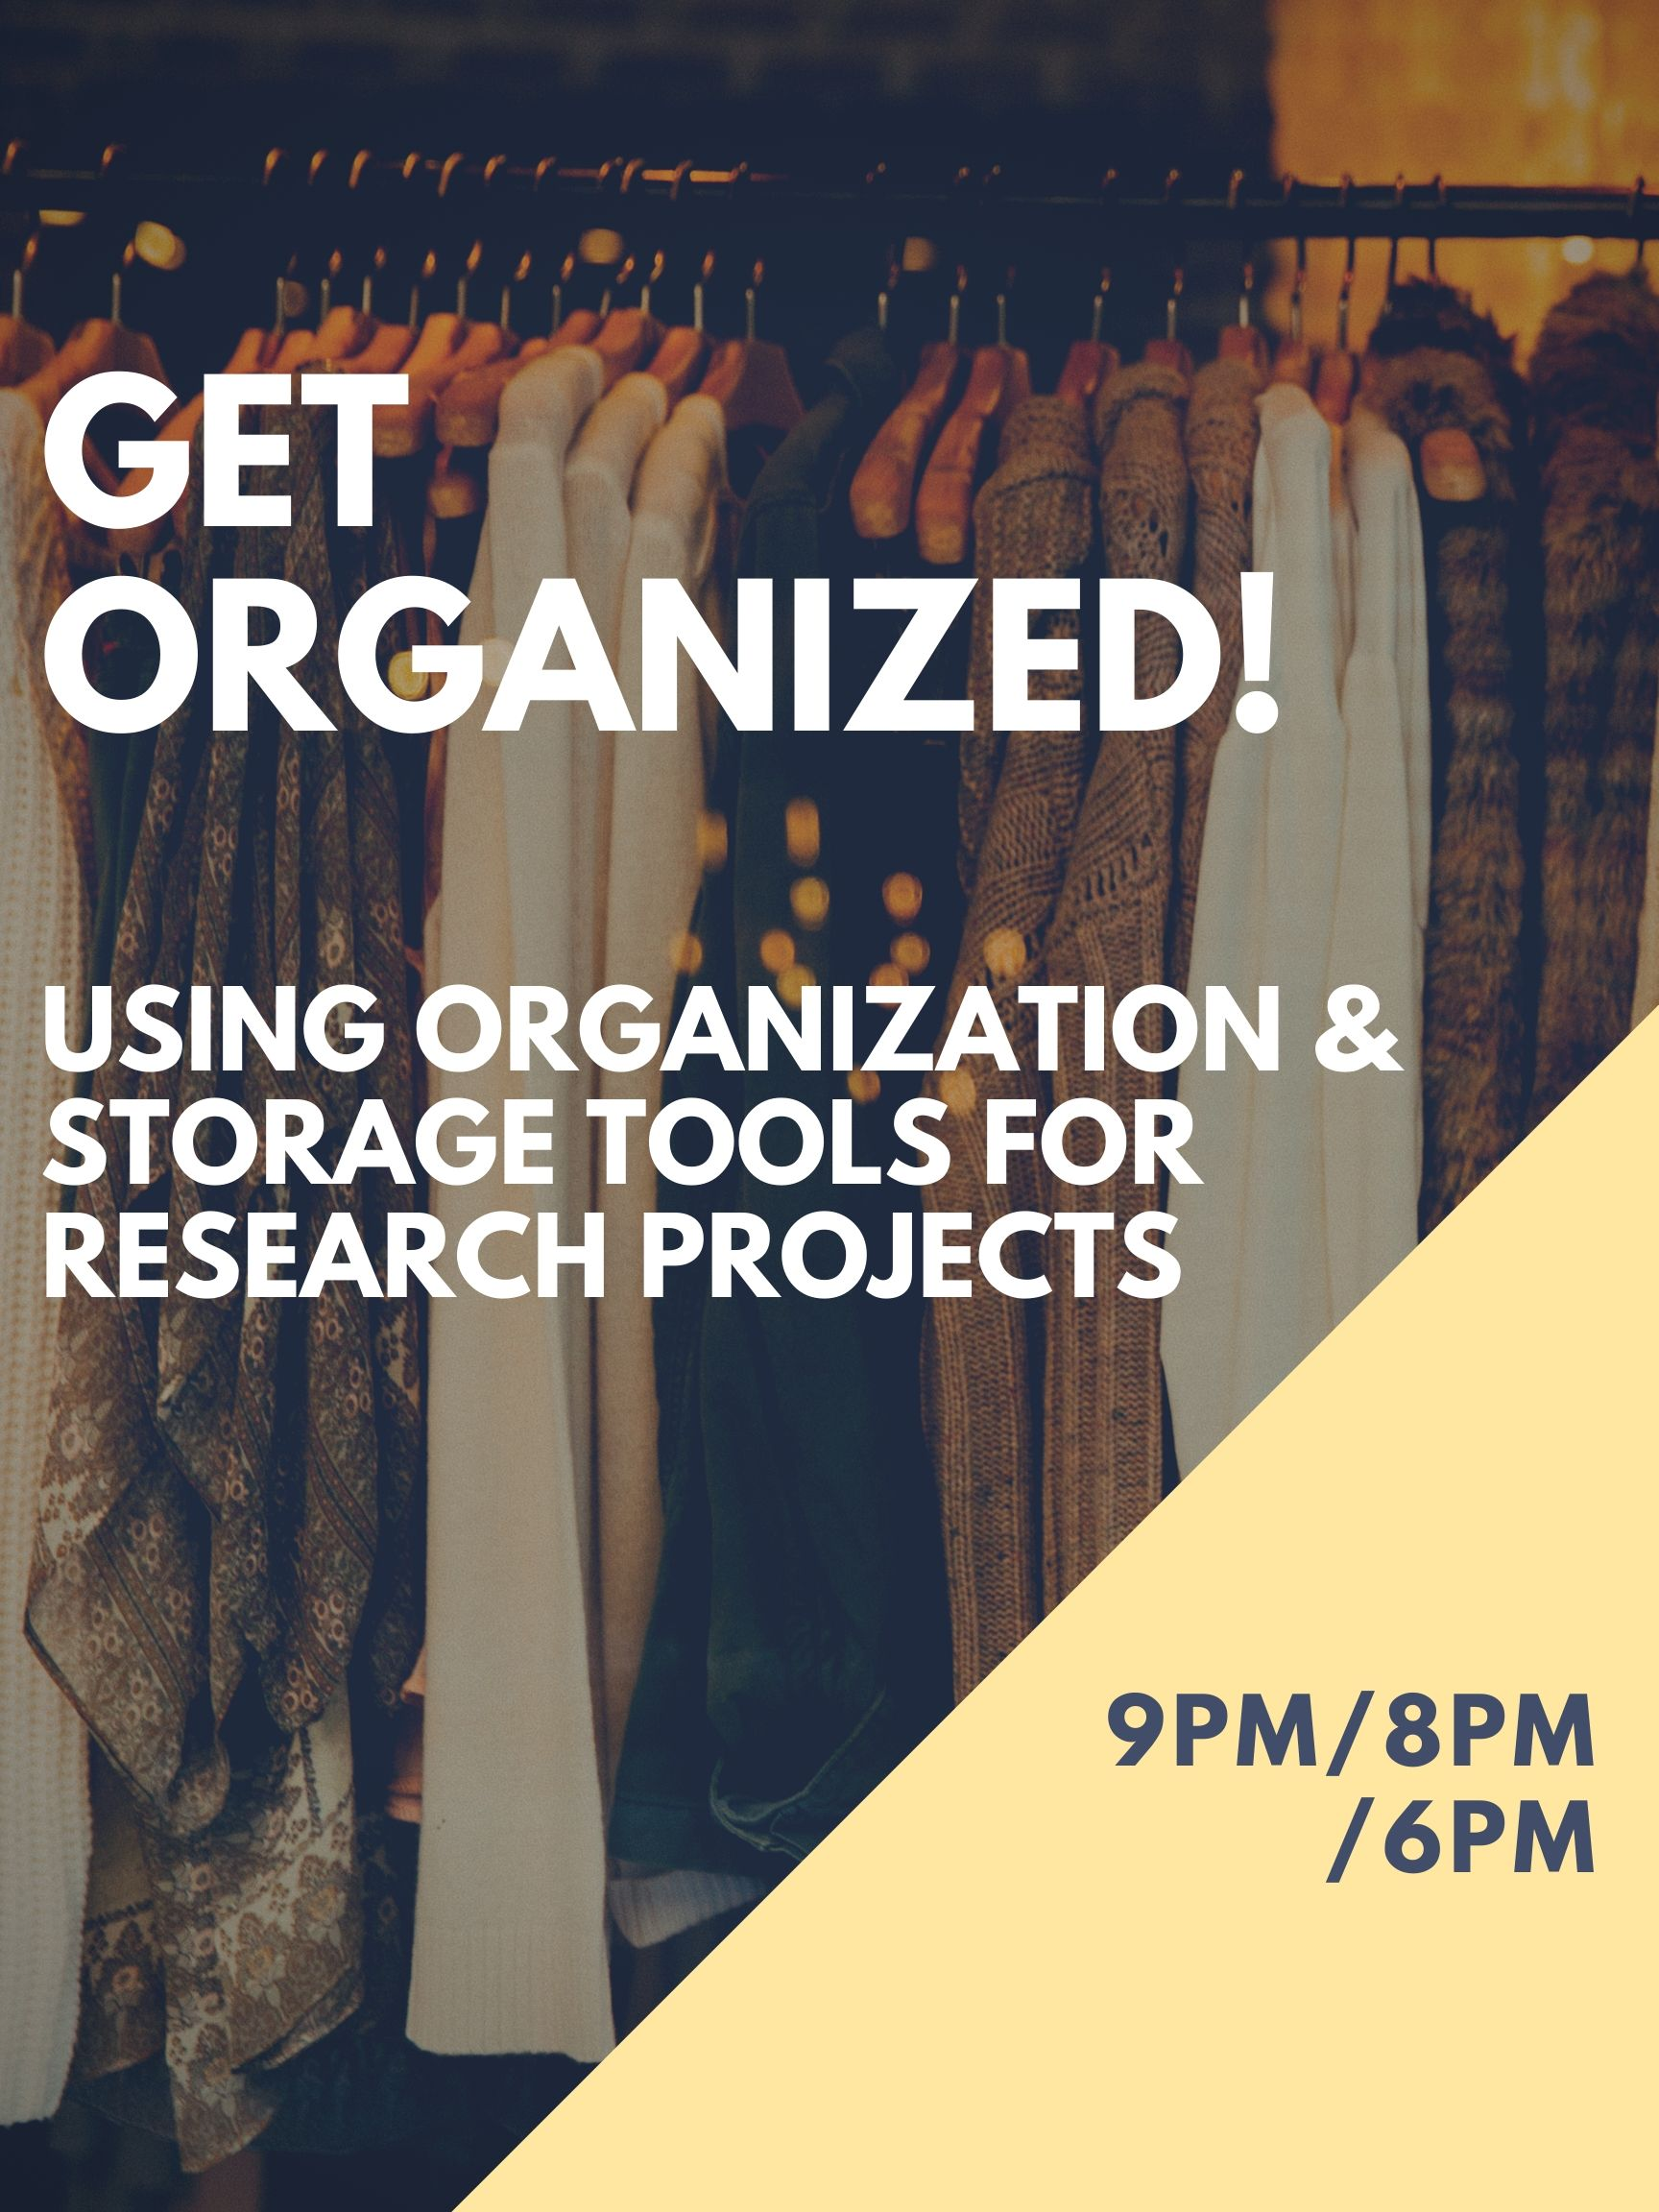 Get Organized!  Using Organization & Storage Tools for Research Projects